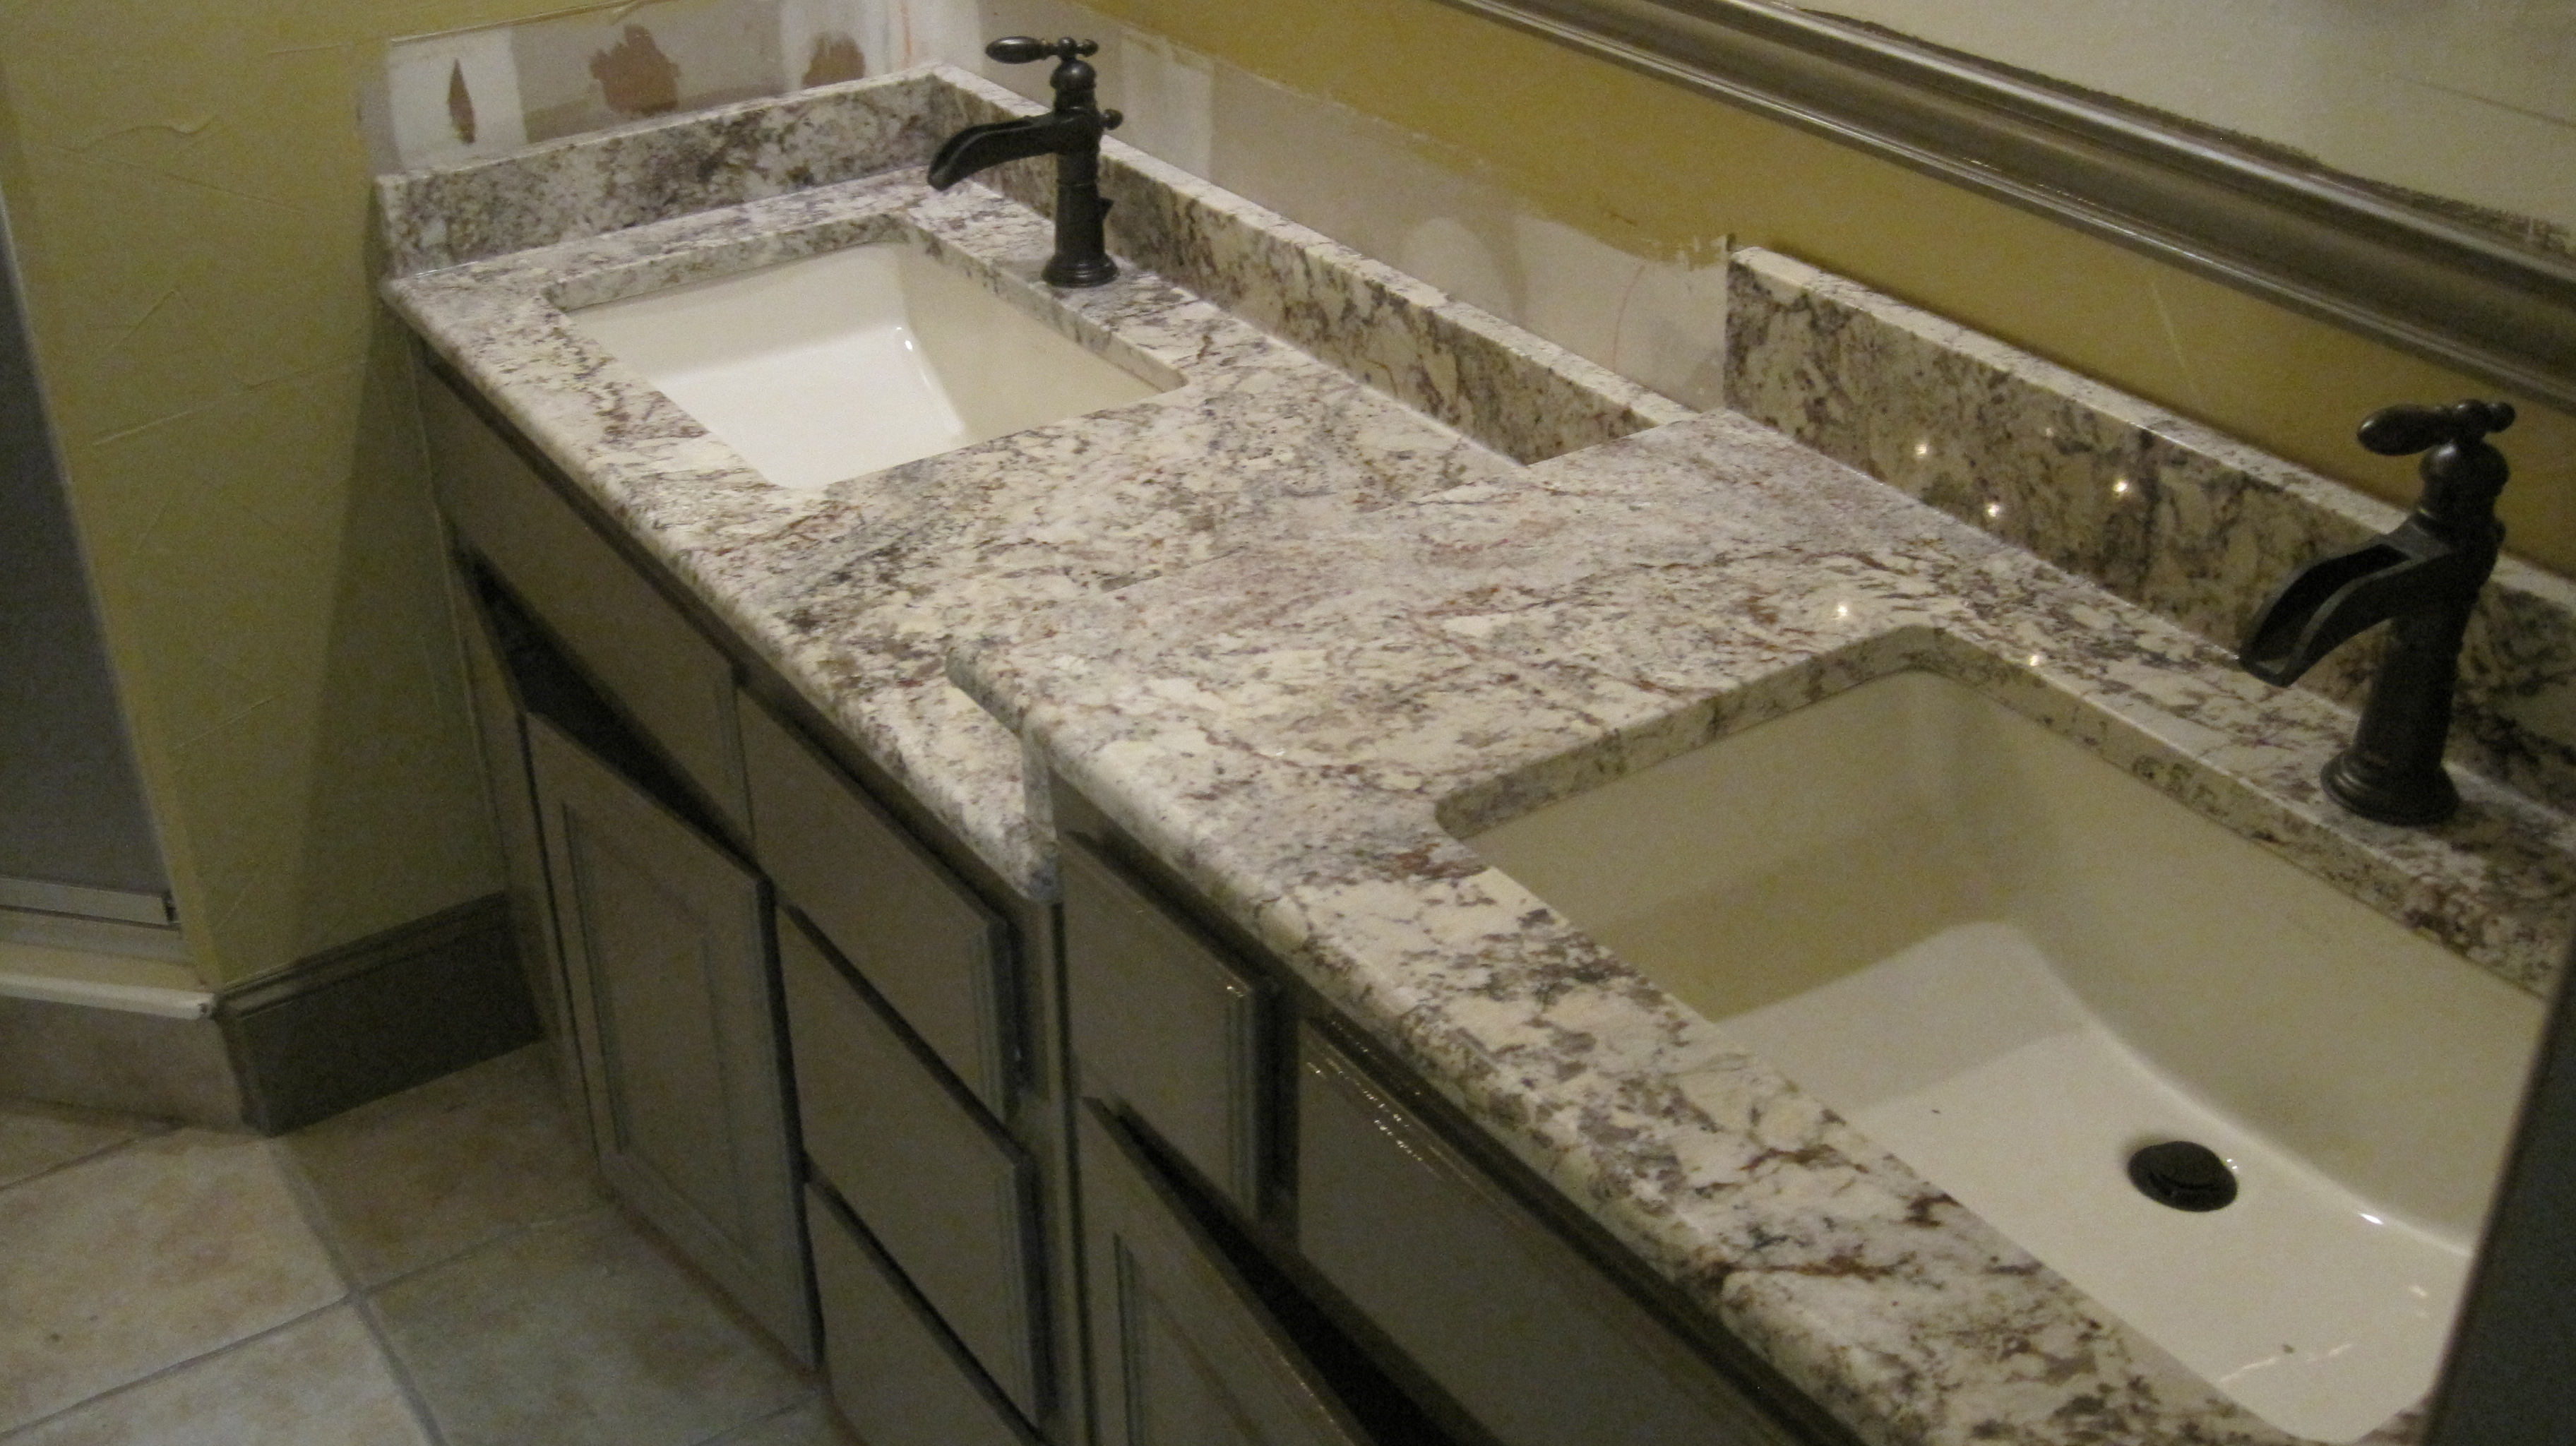 surplus yee remodel builders countertops bathroom countertop vanity tops house haa ideas granite